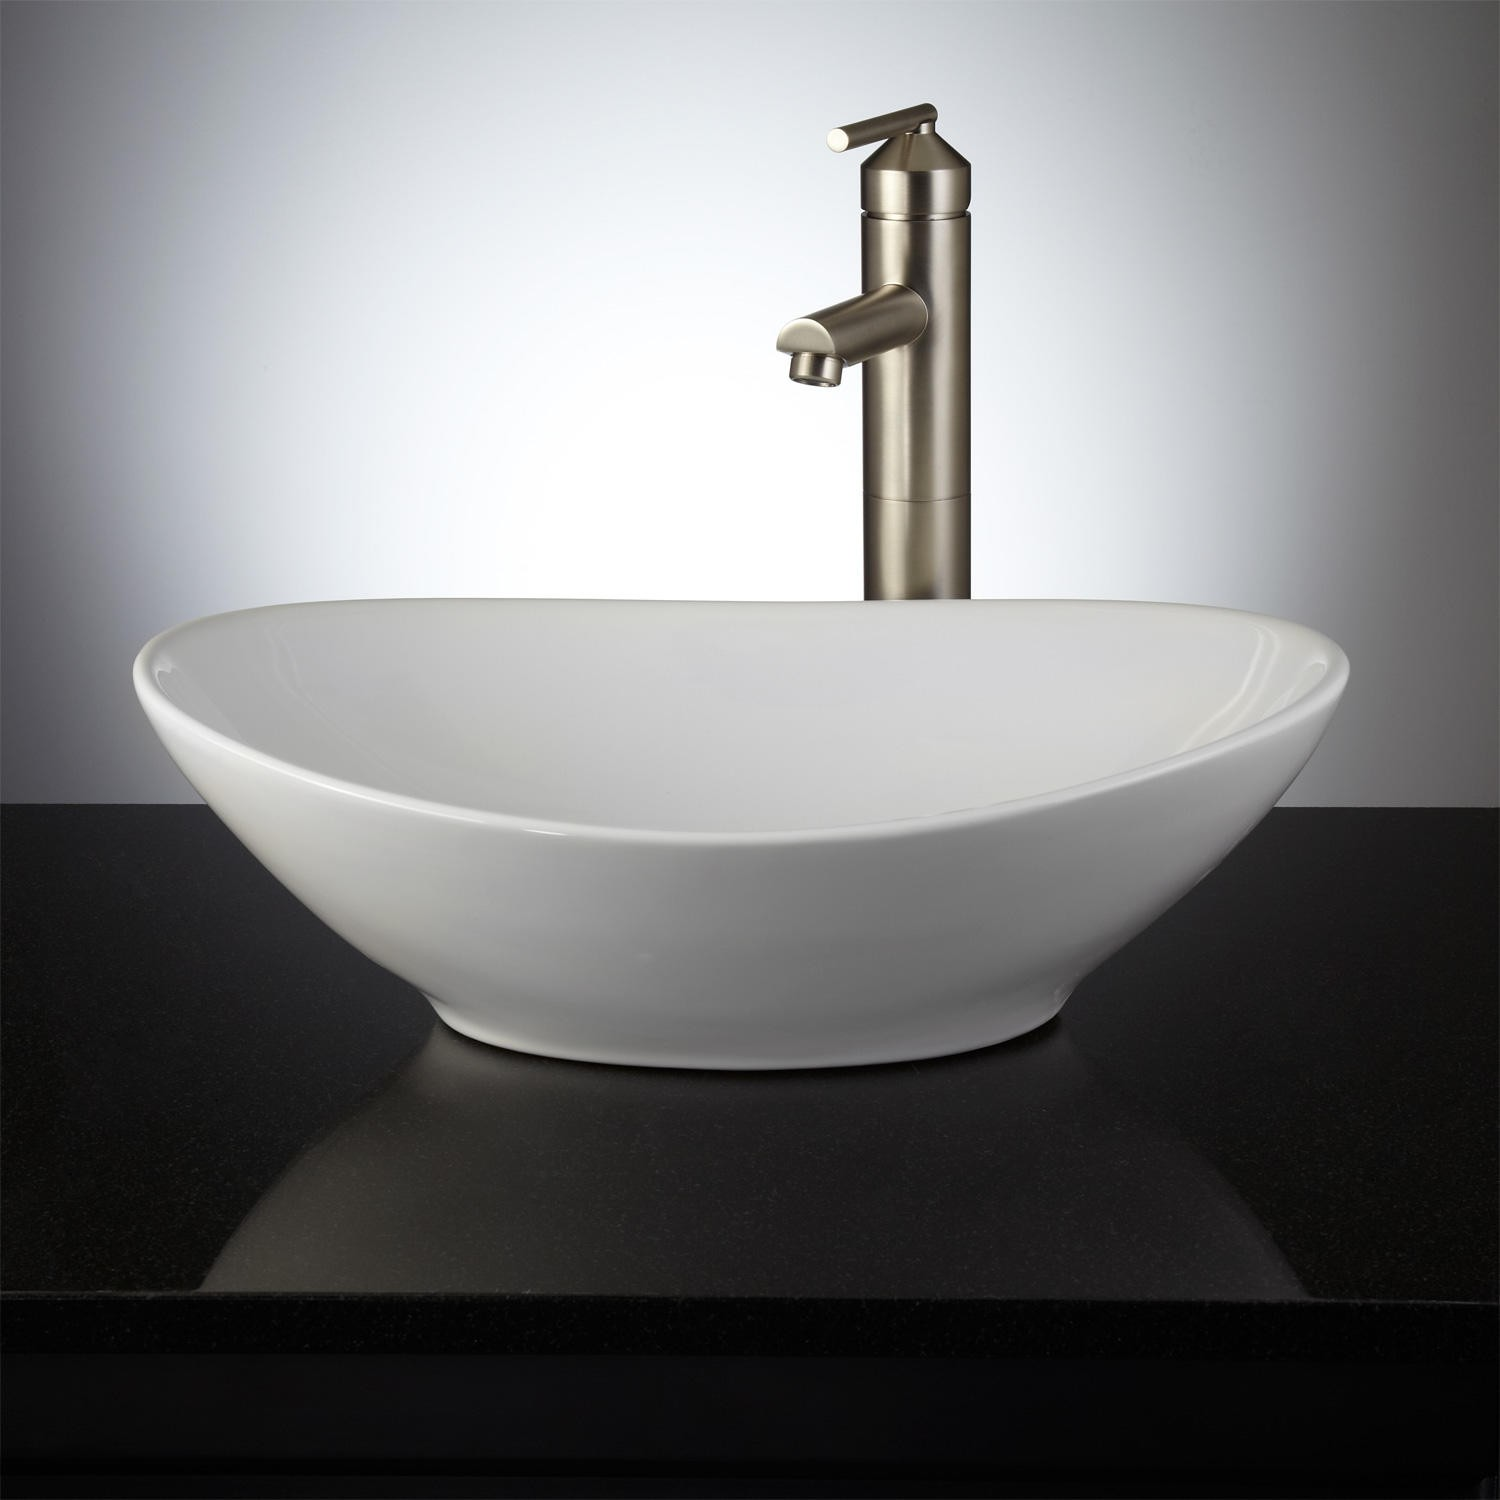 bathroom sinks crafted of porcelain, this beautifully glossy sink has an oval shape and UURIVWS